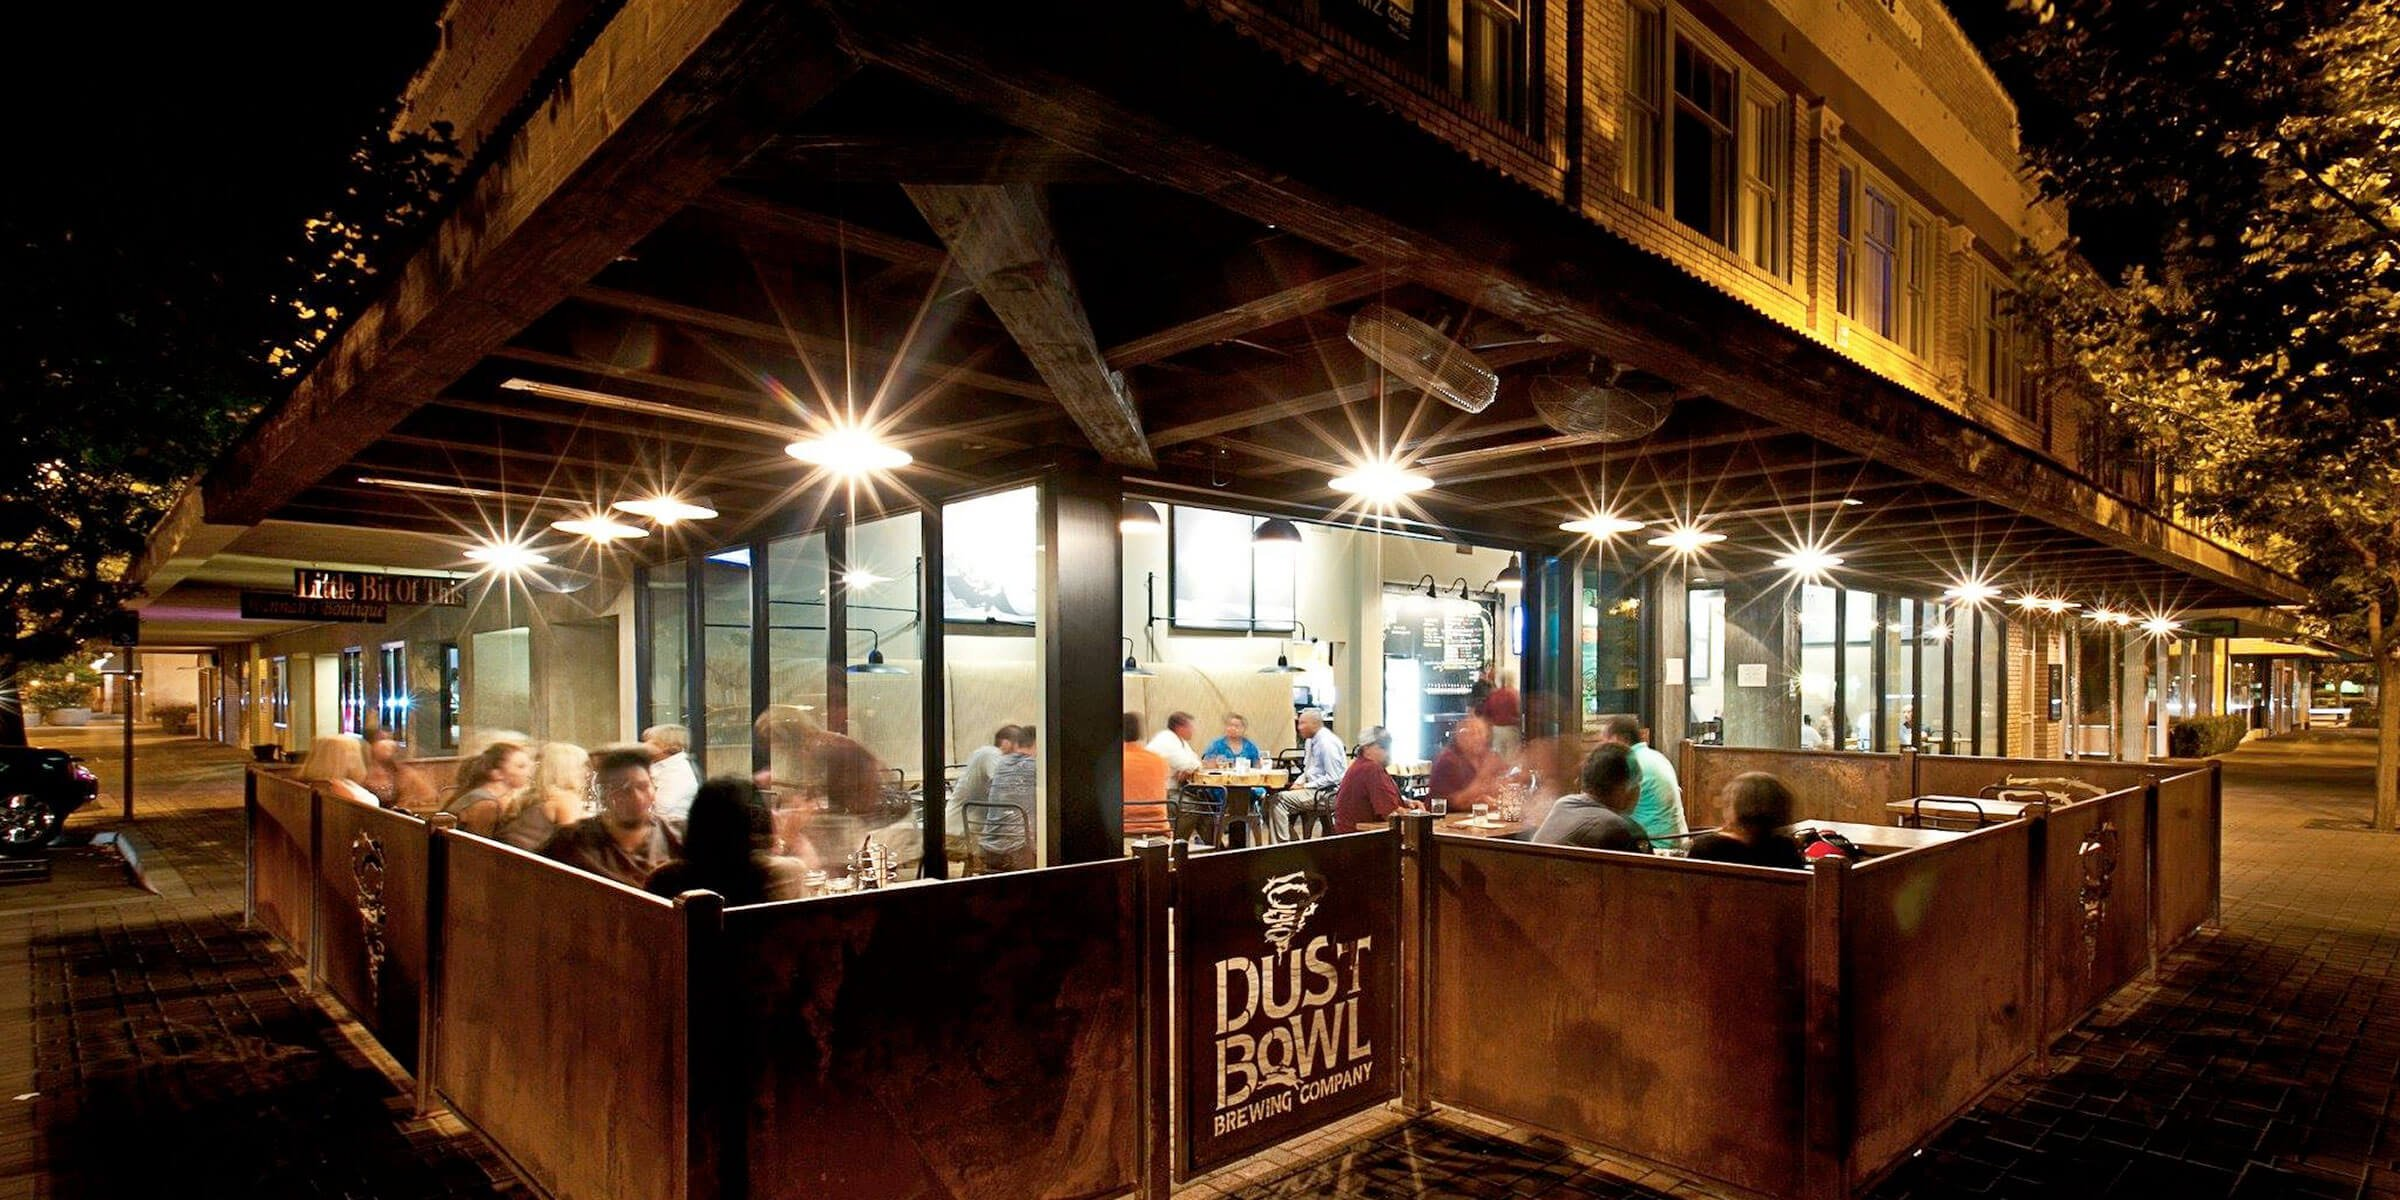 Outside on the patio at Dust Bowl Brewing Co. in downtown Turlock, California